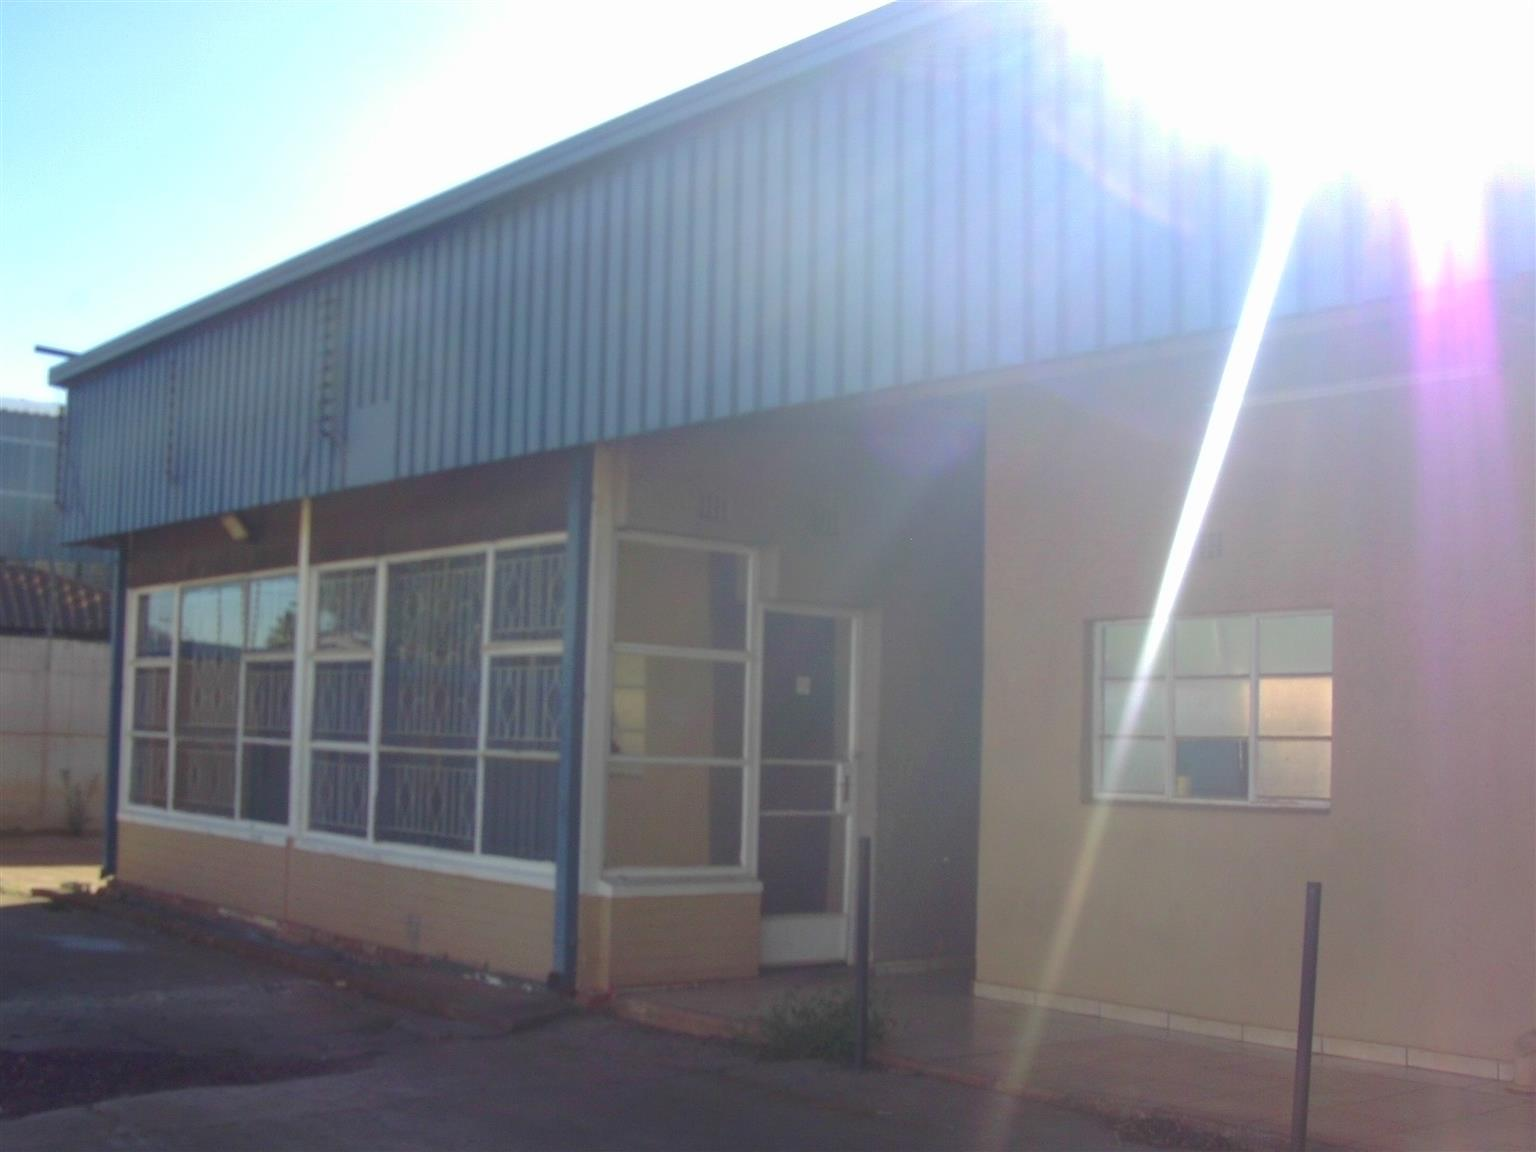 4270m² Factory/Warehouse to let in the heart of Anderbolt, Boksburg.